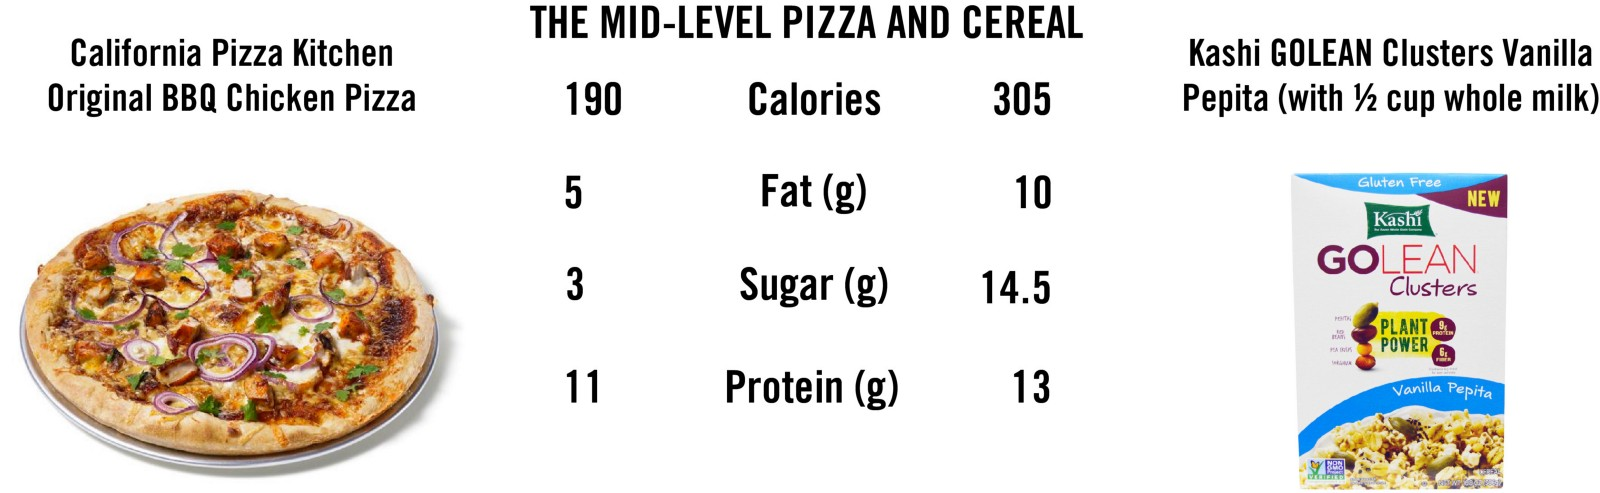 Was This Dietician Right That Pizza for Breakfast Is Healthier Than ...